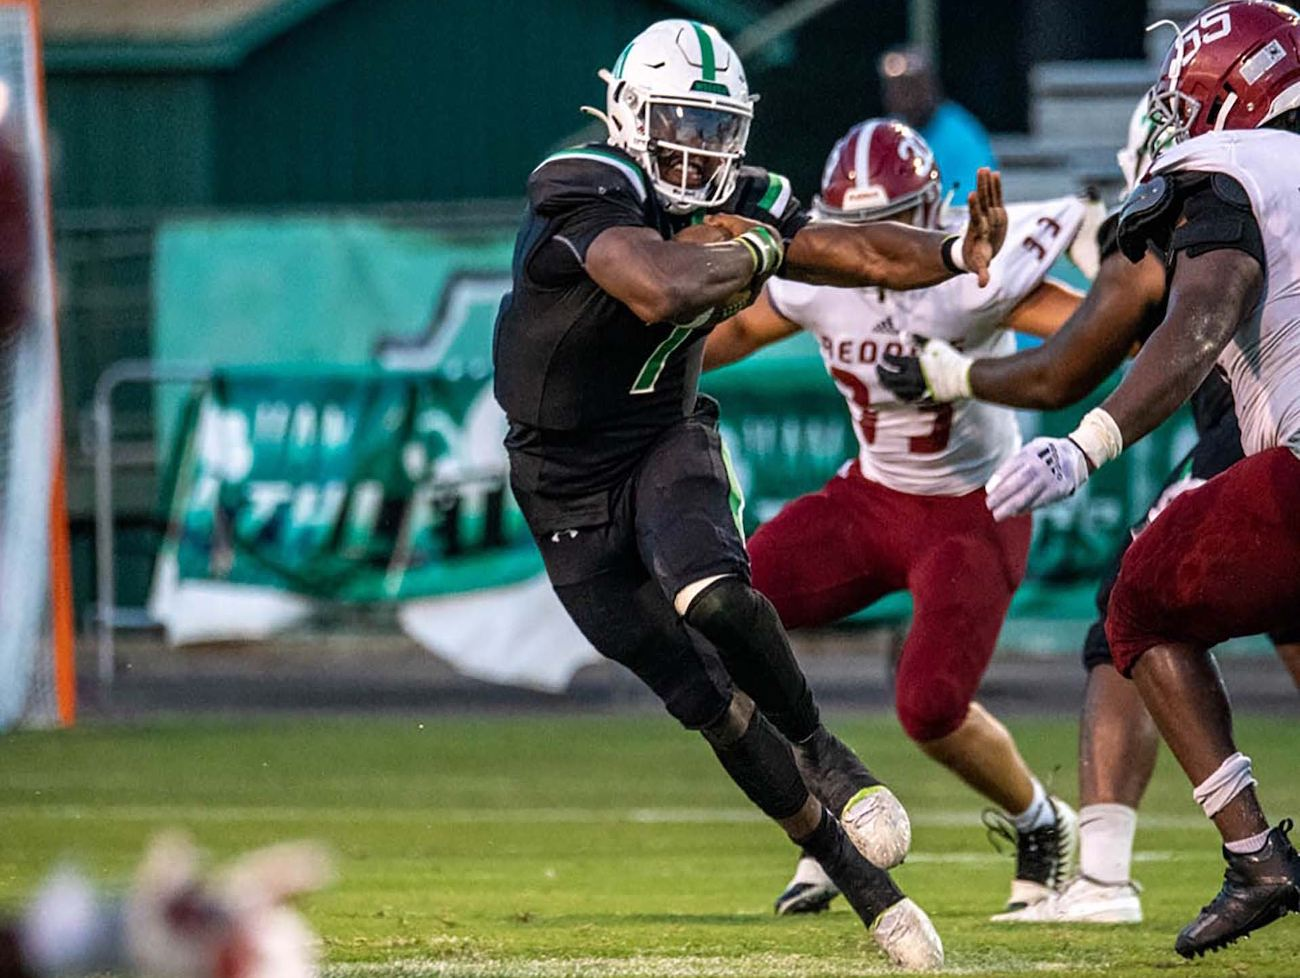 UAM holds on to top Tech